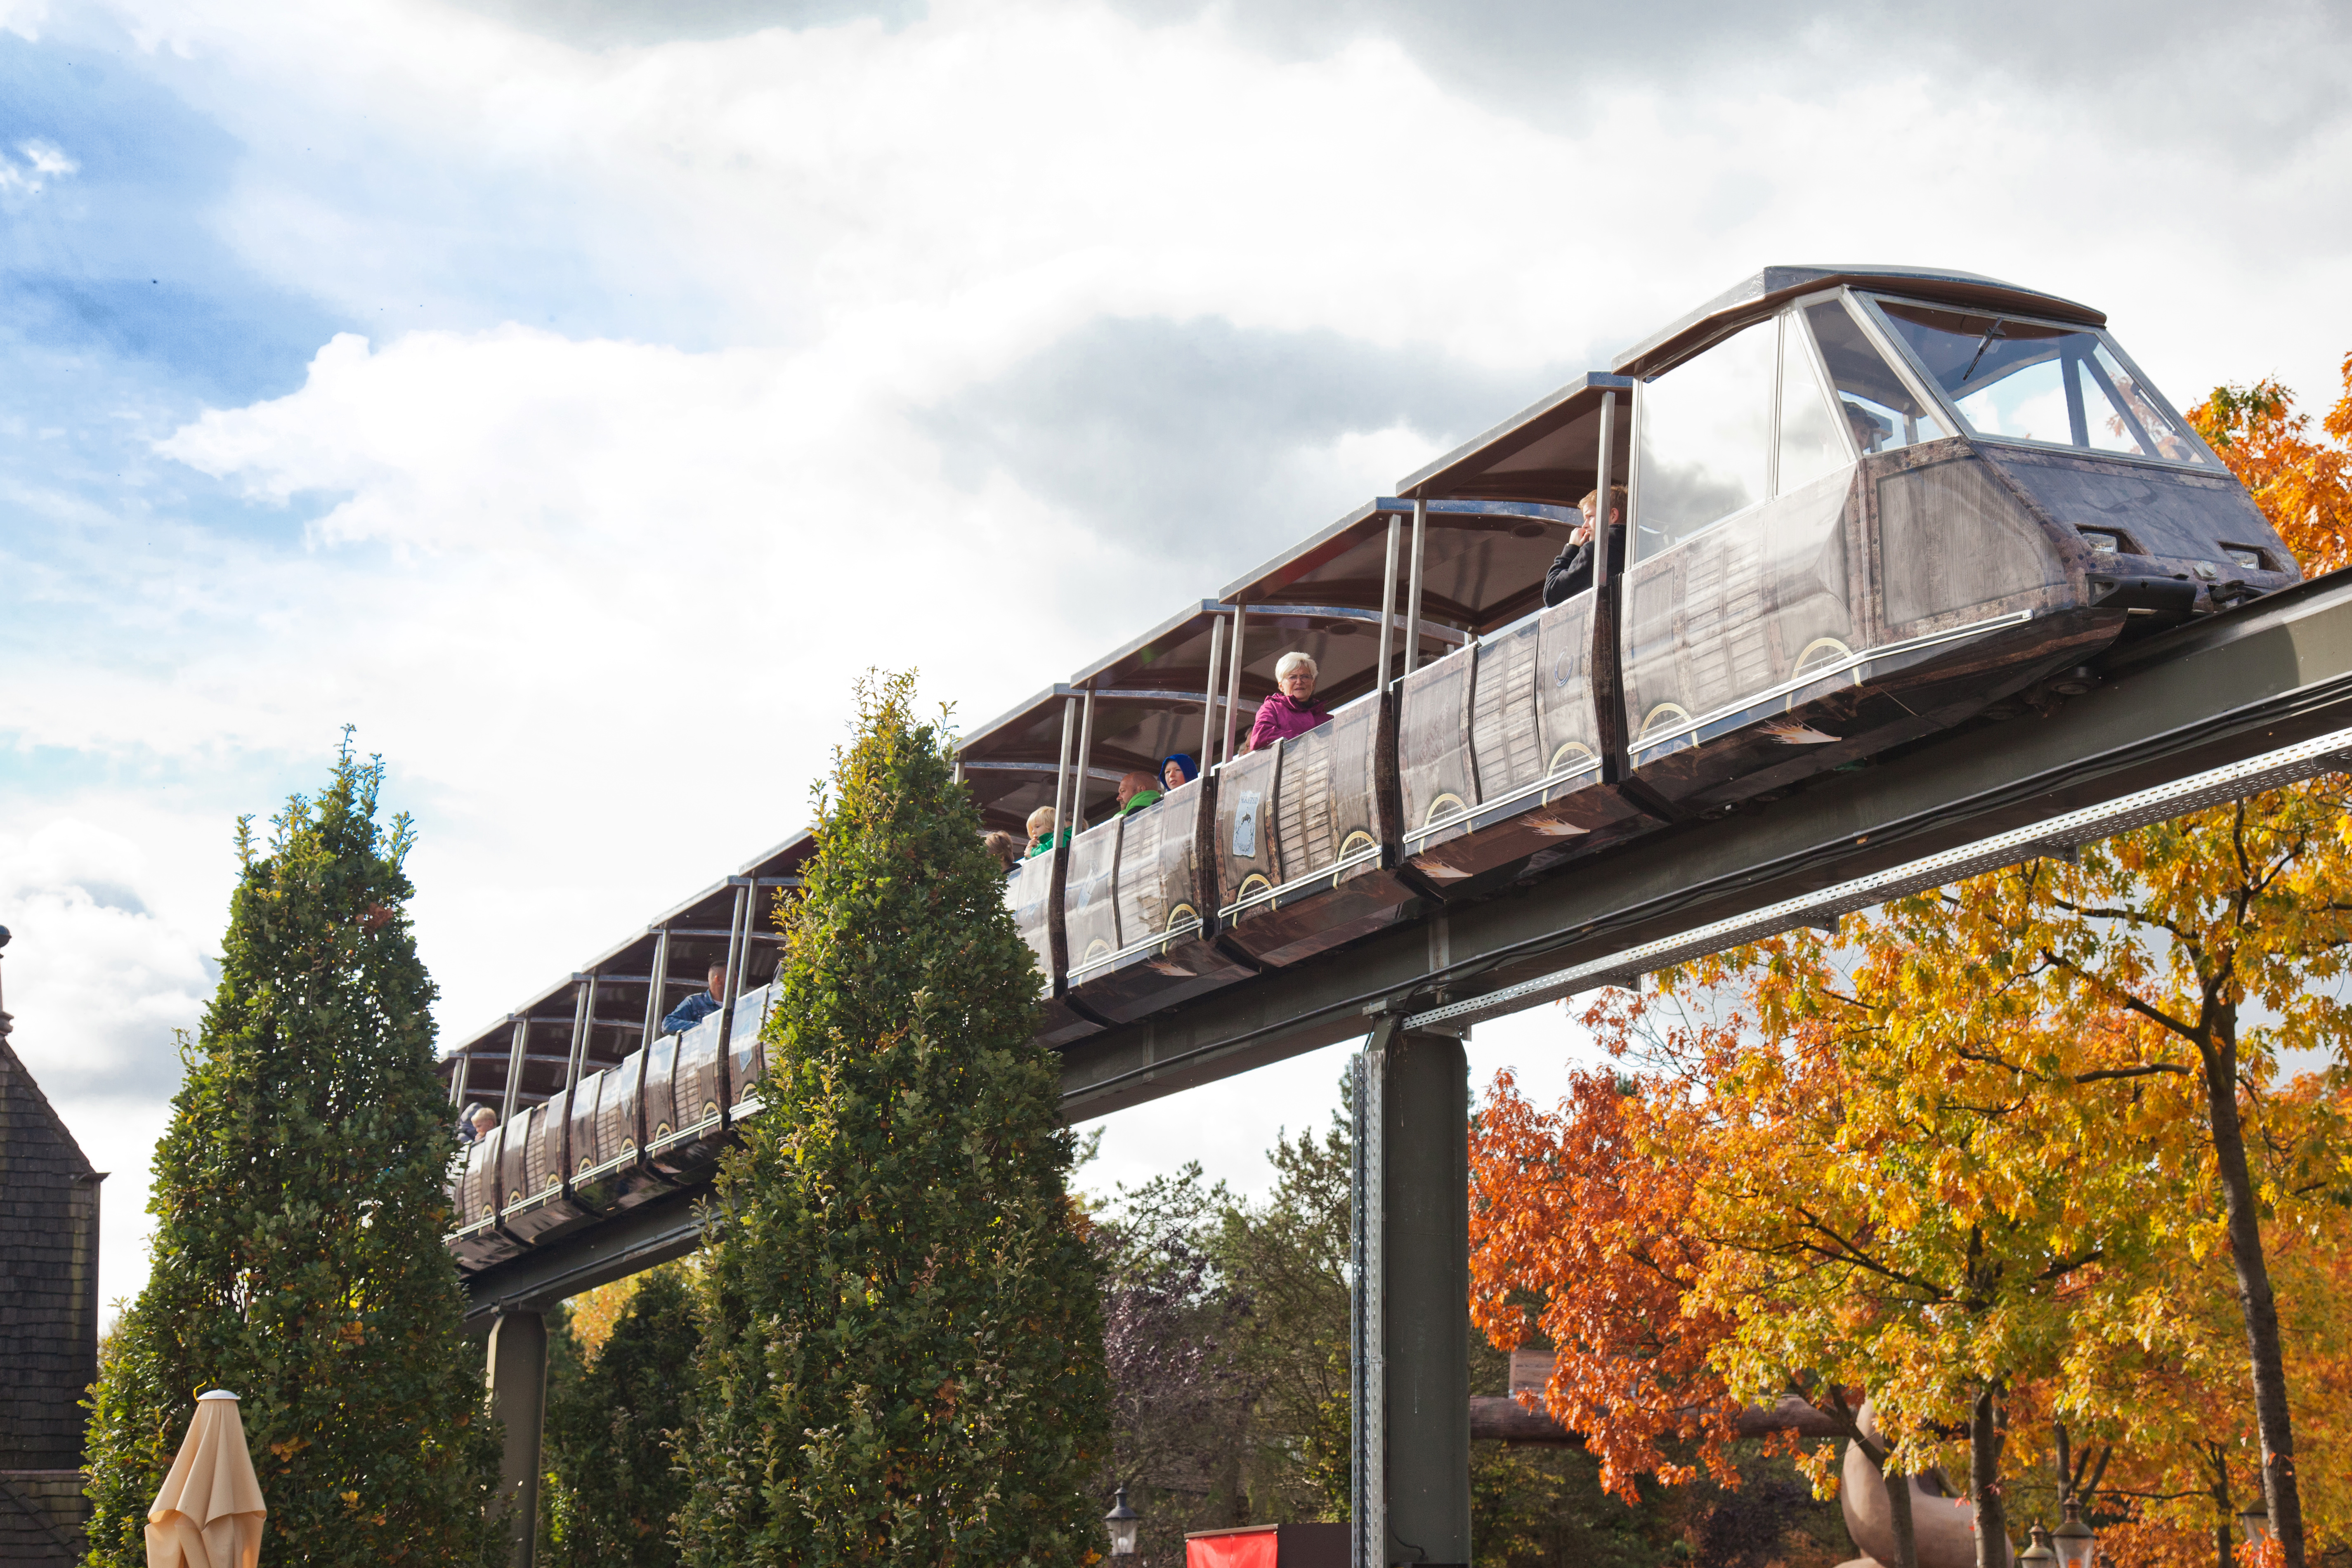 Heide Park Resort Monorail 001